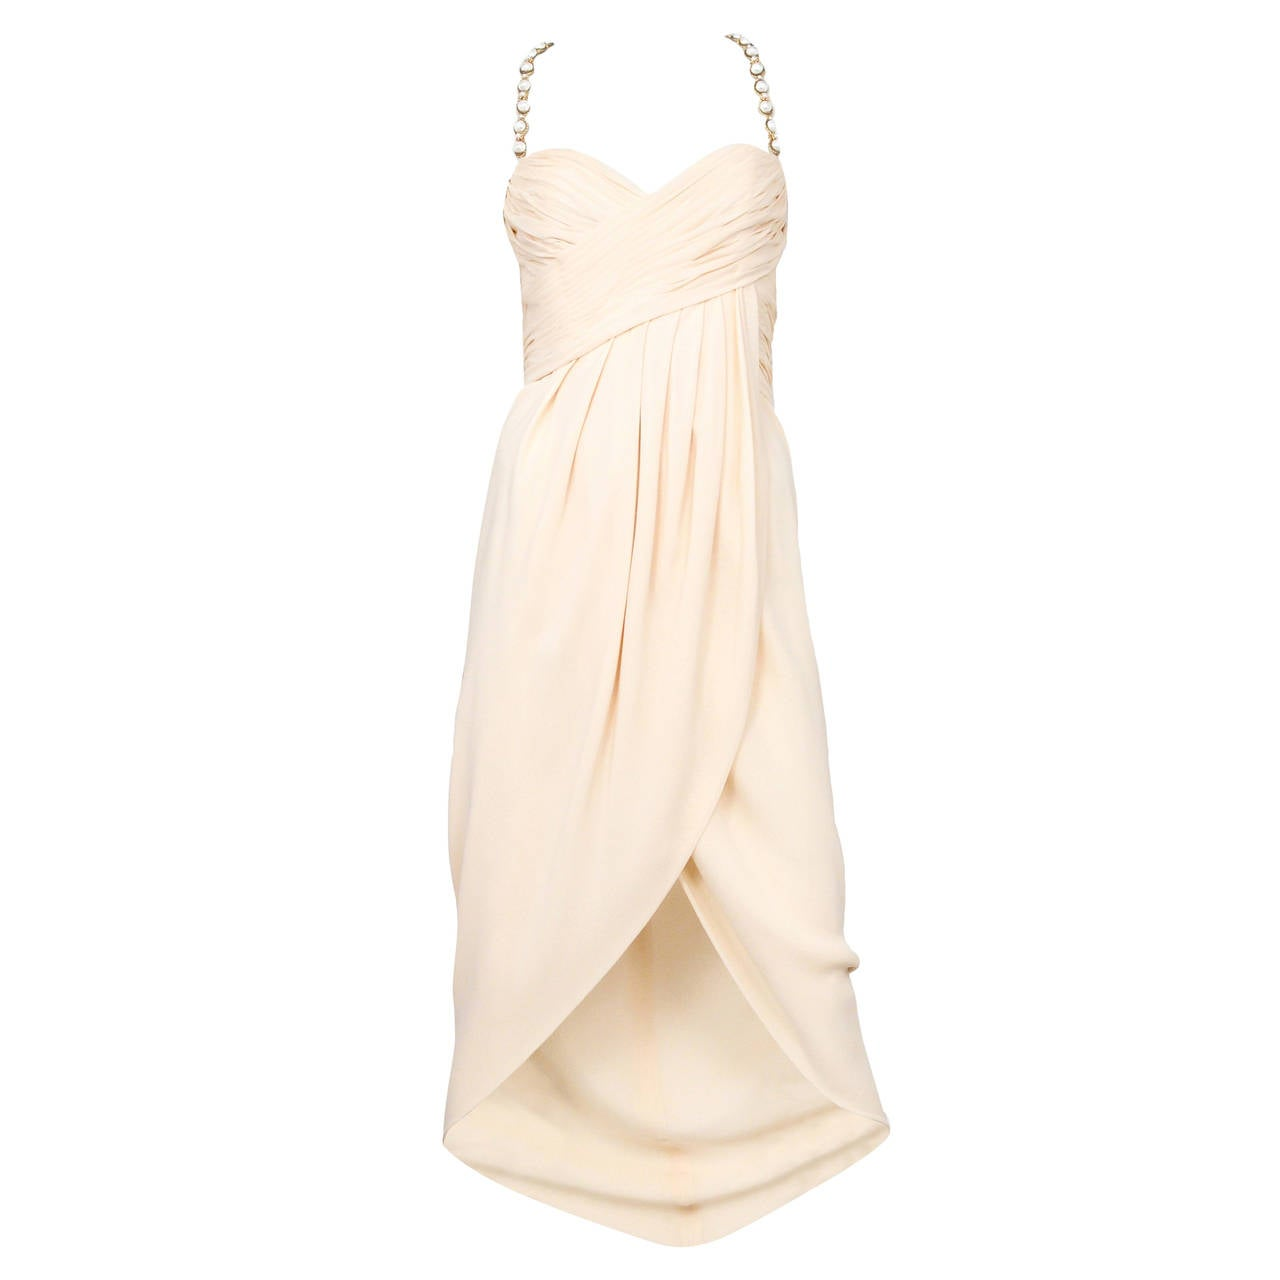 Chanel Cream Silk Pearl Strap Dress 1